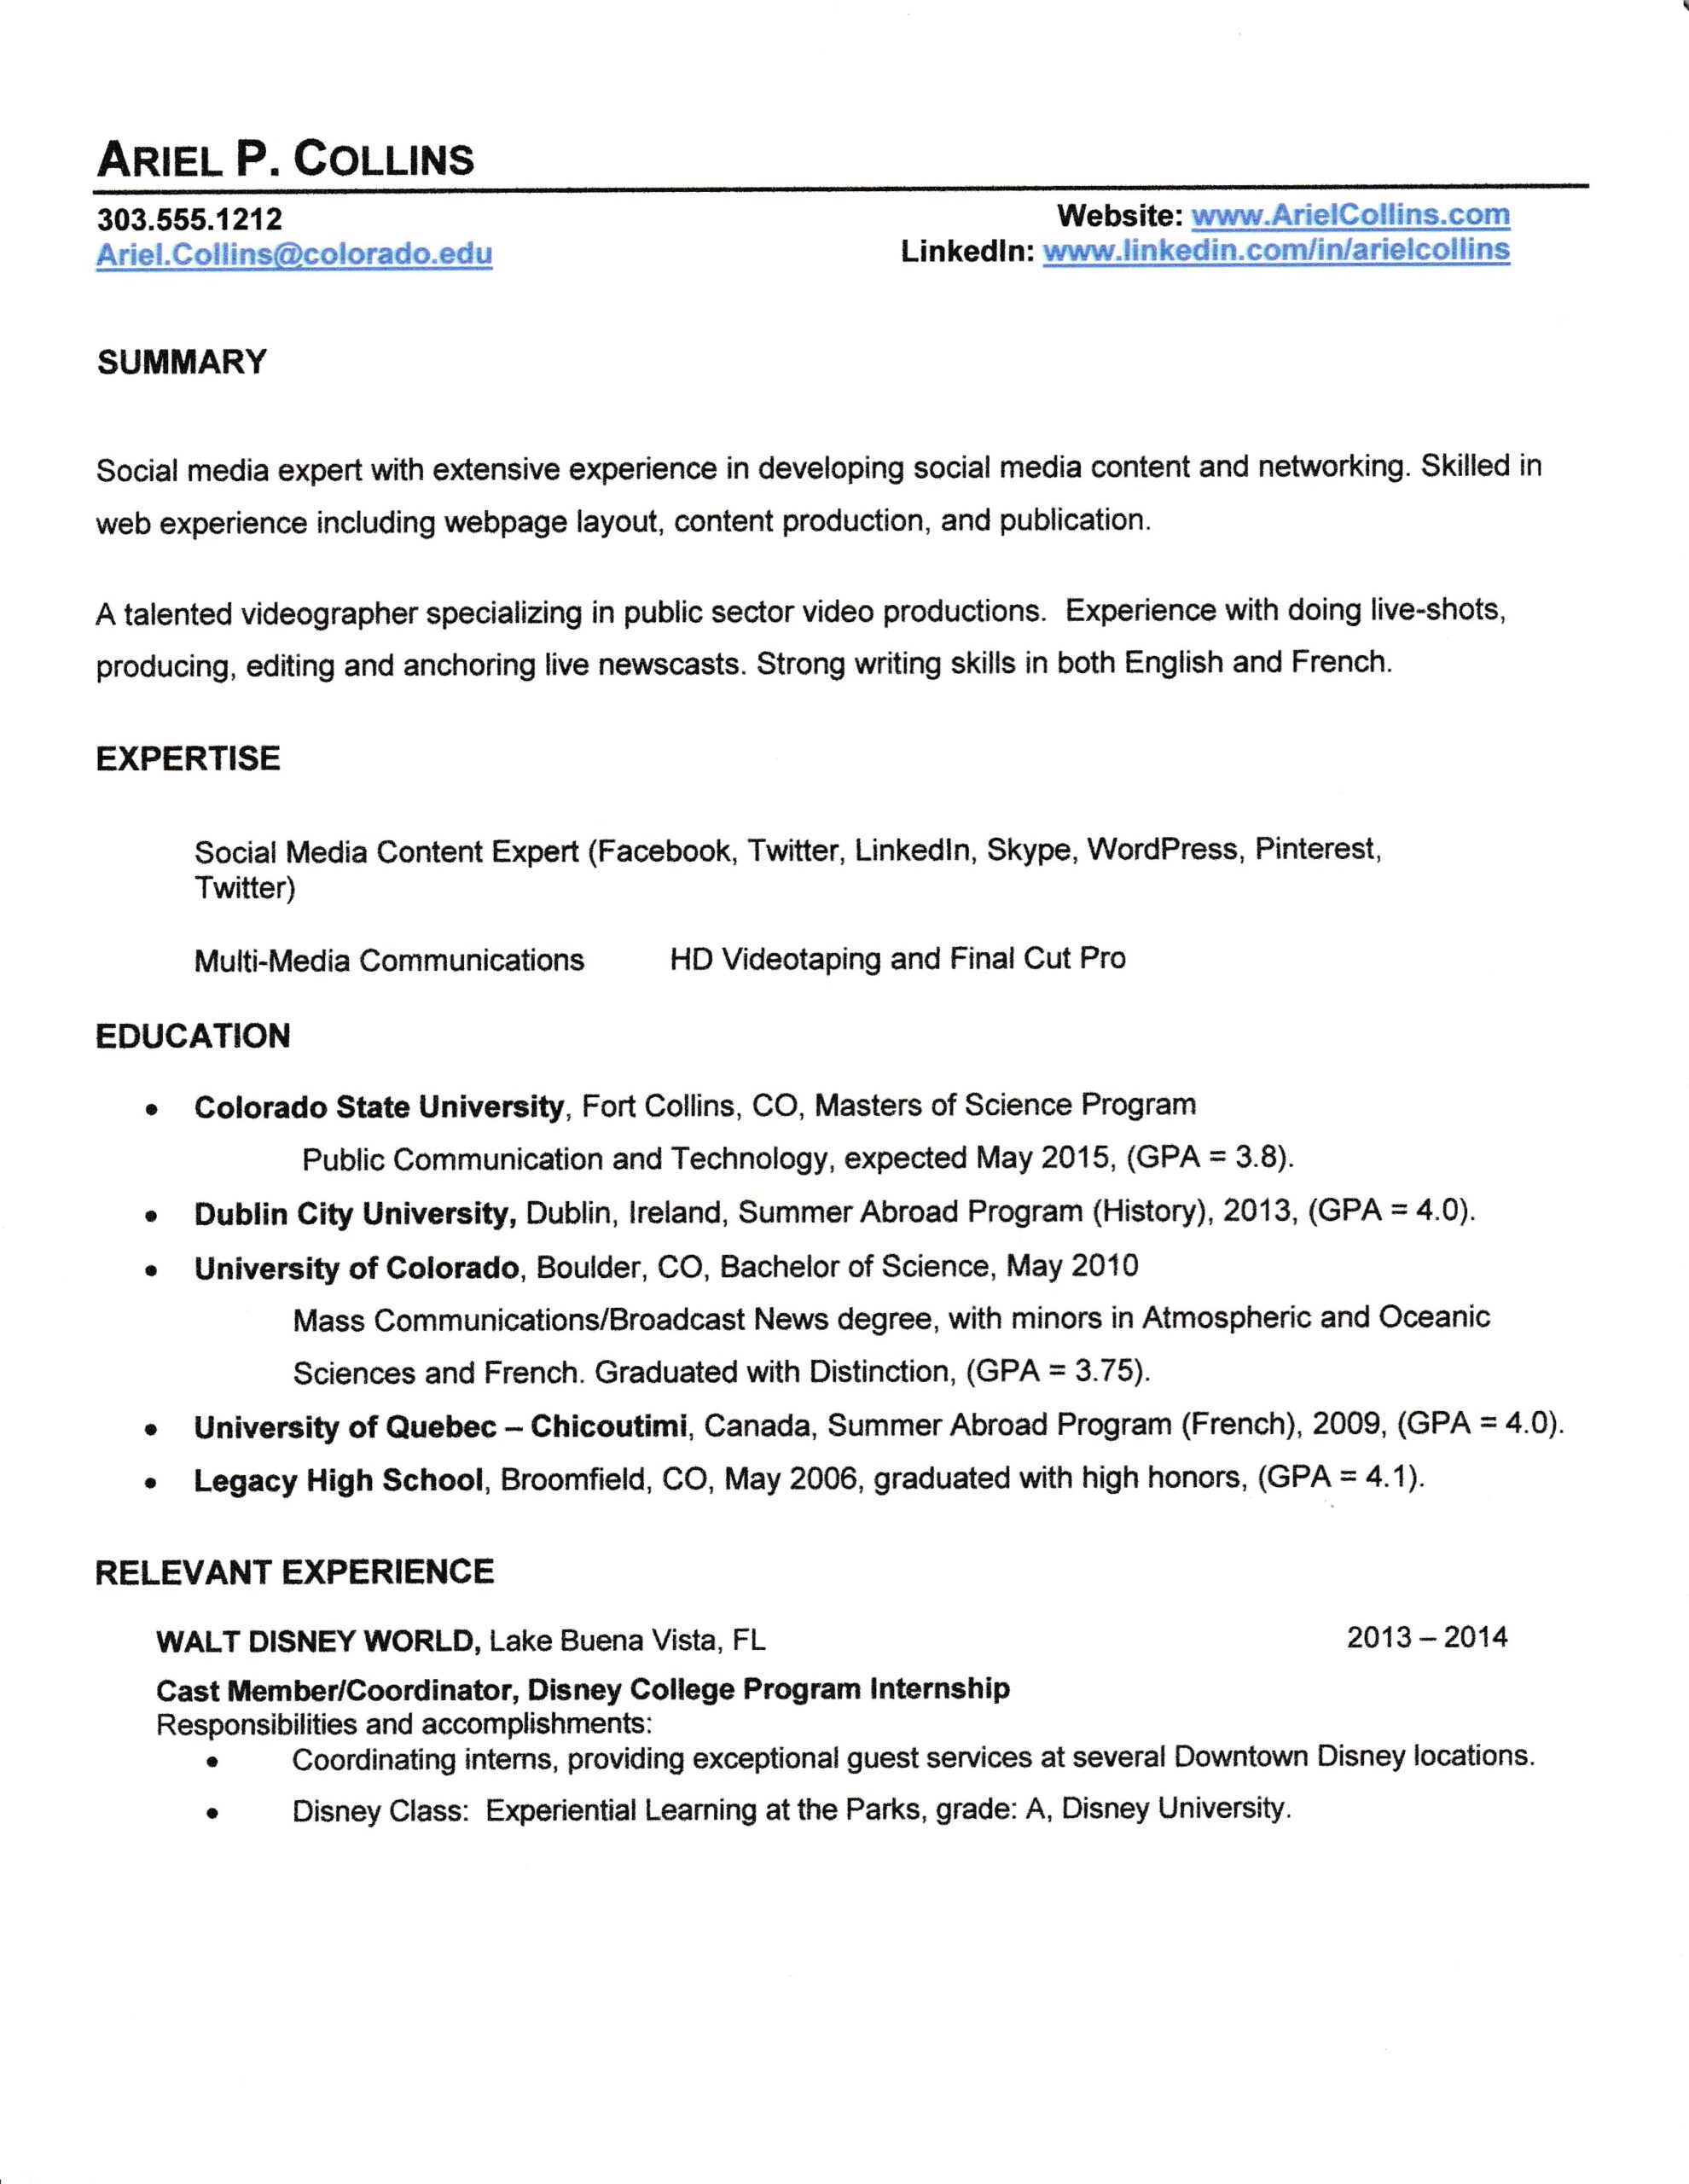 disney casting our magical moments college program qsfb resume electrical engineer Resume Disney College Program Qsfb Resume